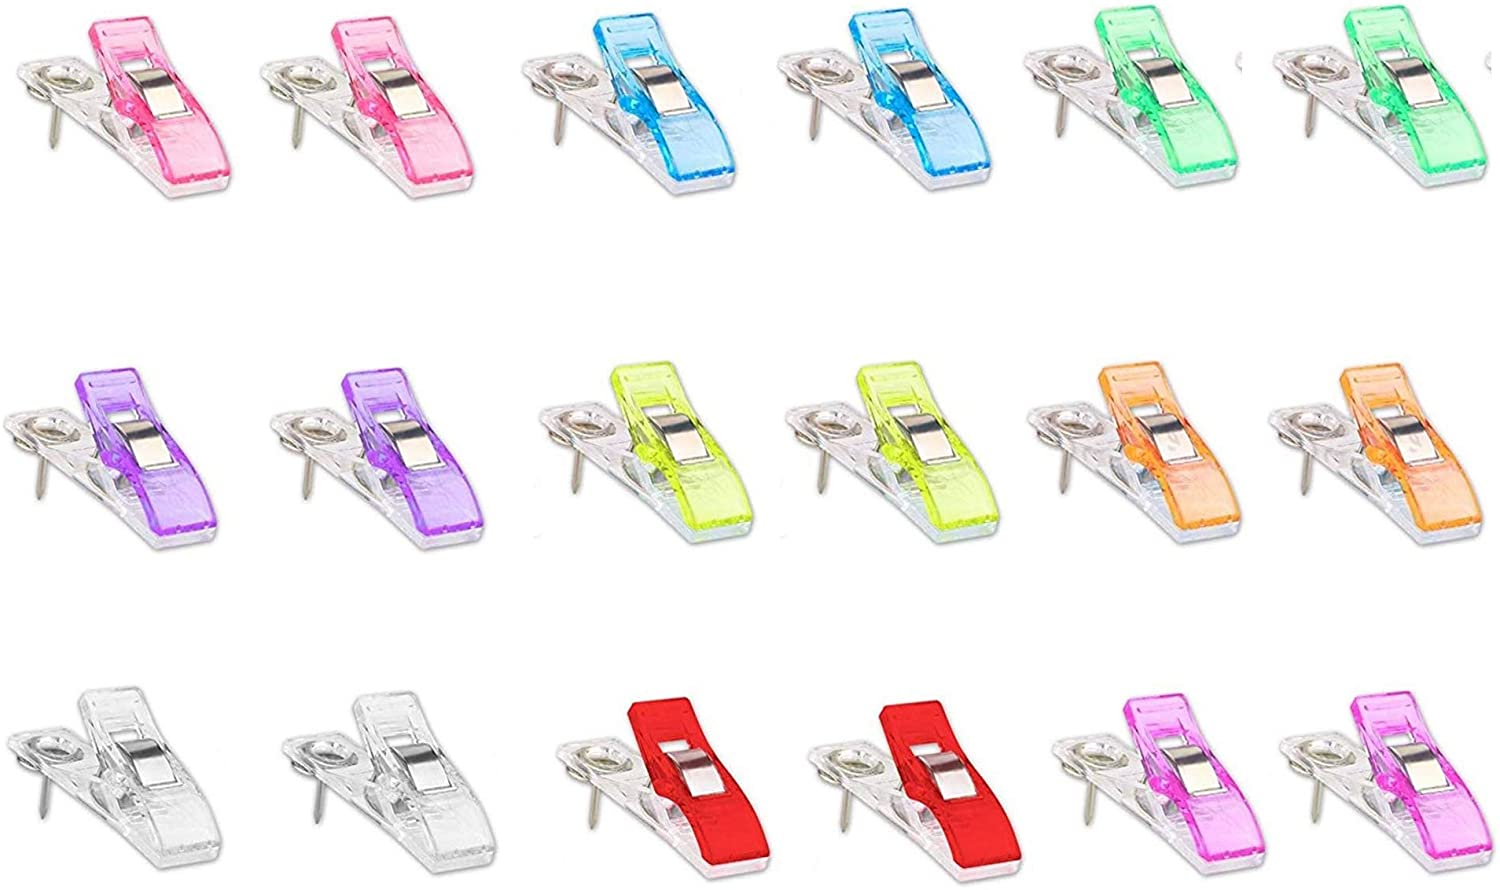 18 Pcs Plastic Clips with Push Pins Multi Color Mini Innovative Paper Clip for Photos Memo Notes Map Ticket Pictures Craft Project Cubicle Wall Cork Board Office School Home